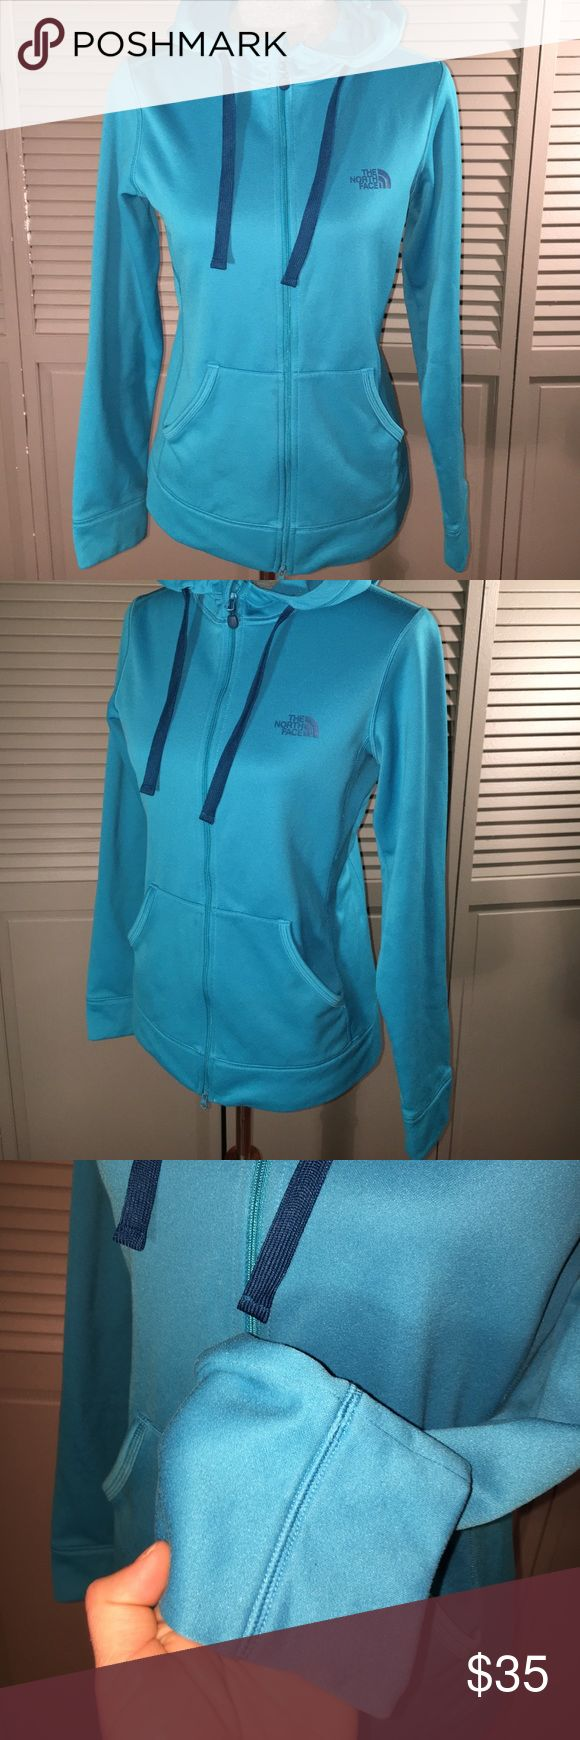 The north face blue zip up M In brand new condition the north face blue zip up. Women's size medium The North Face Tops Sweatshirts & Hoodies